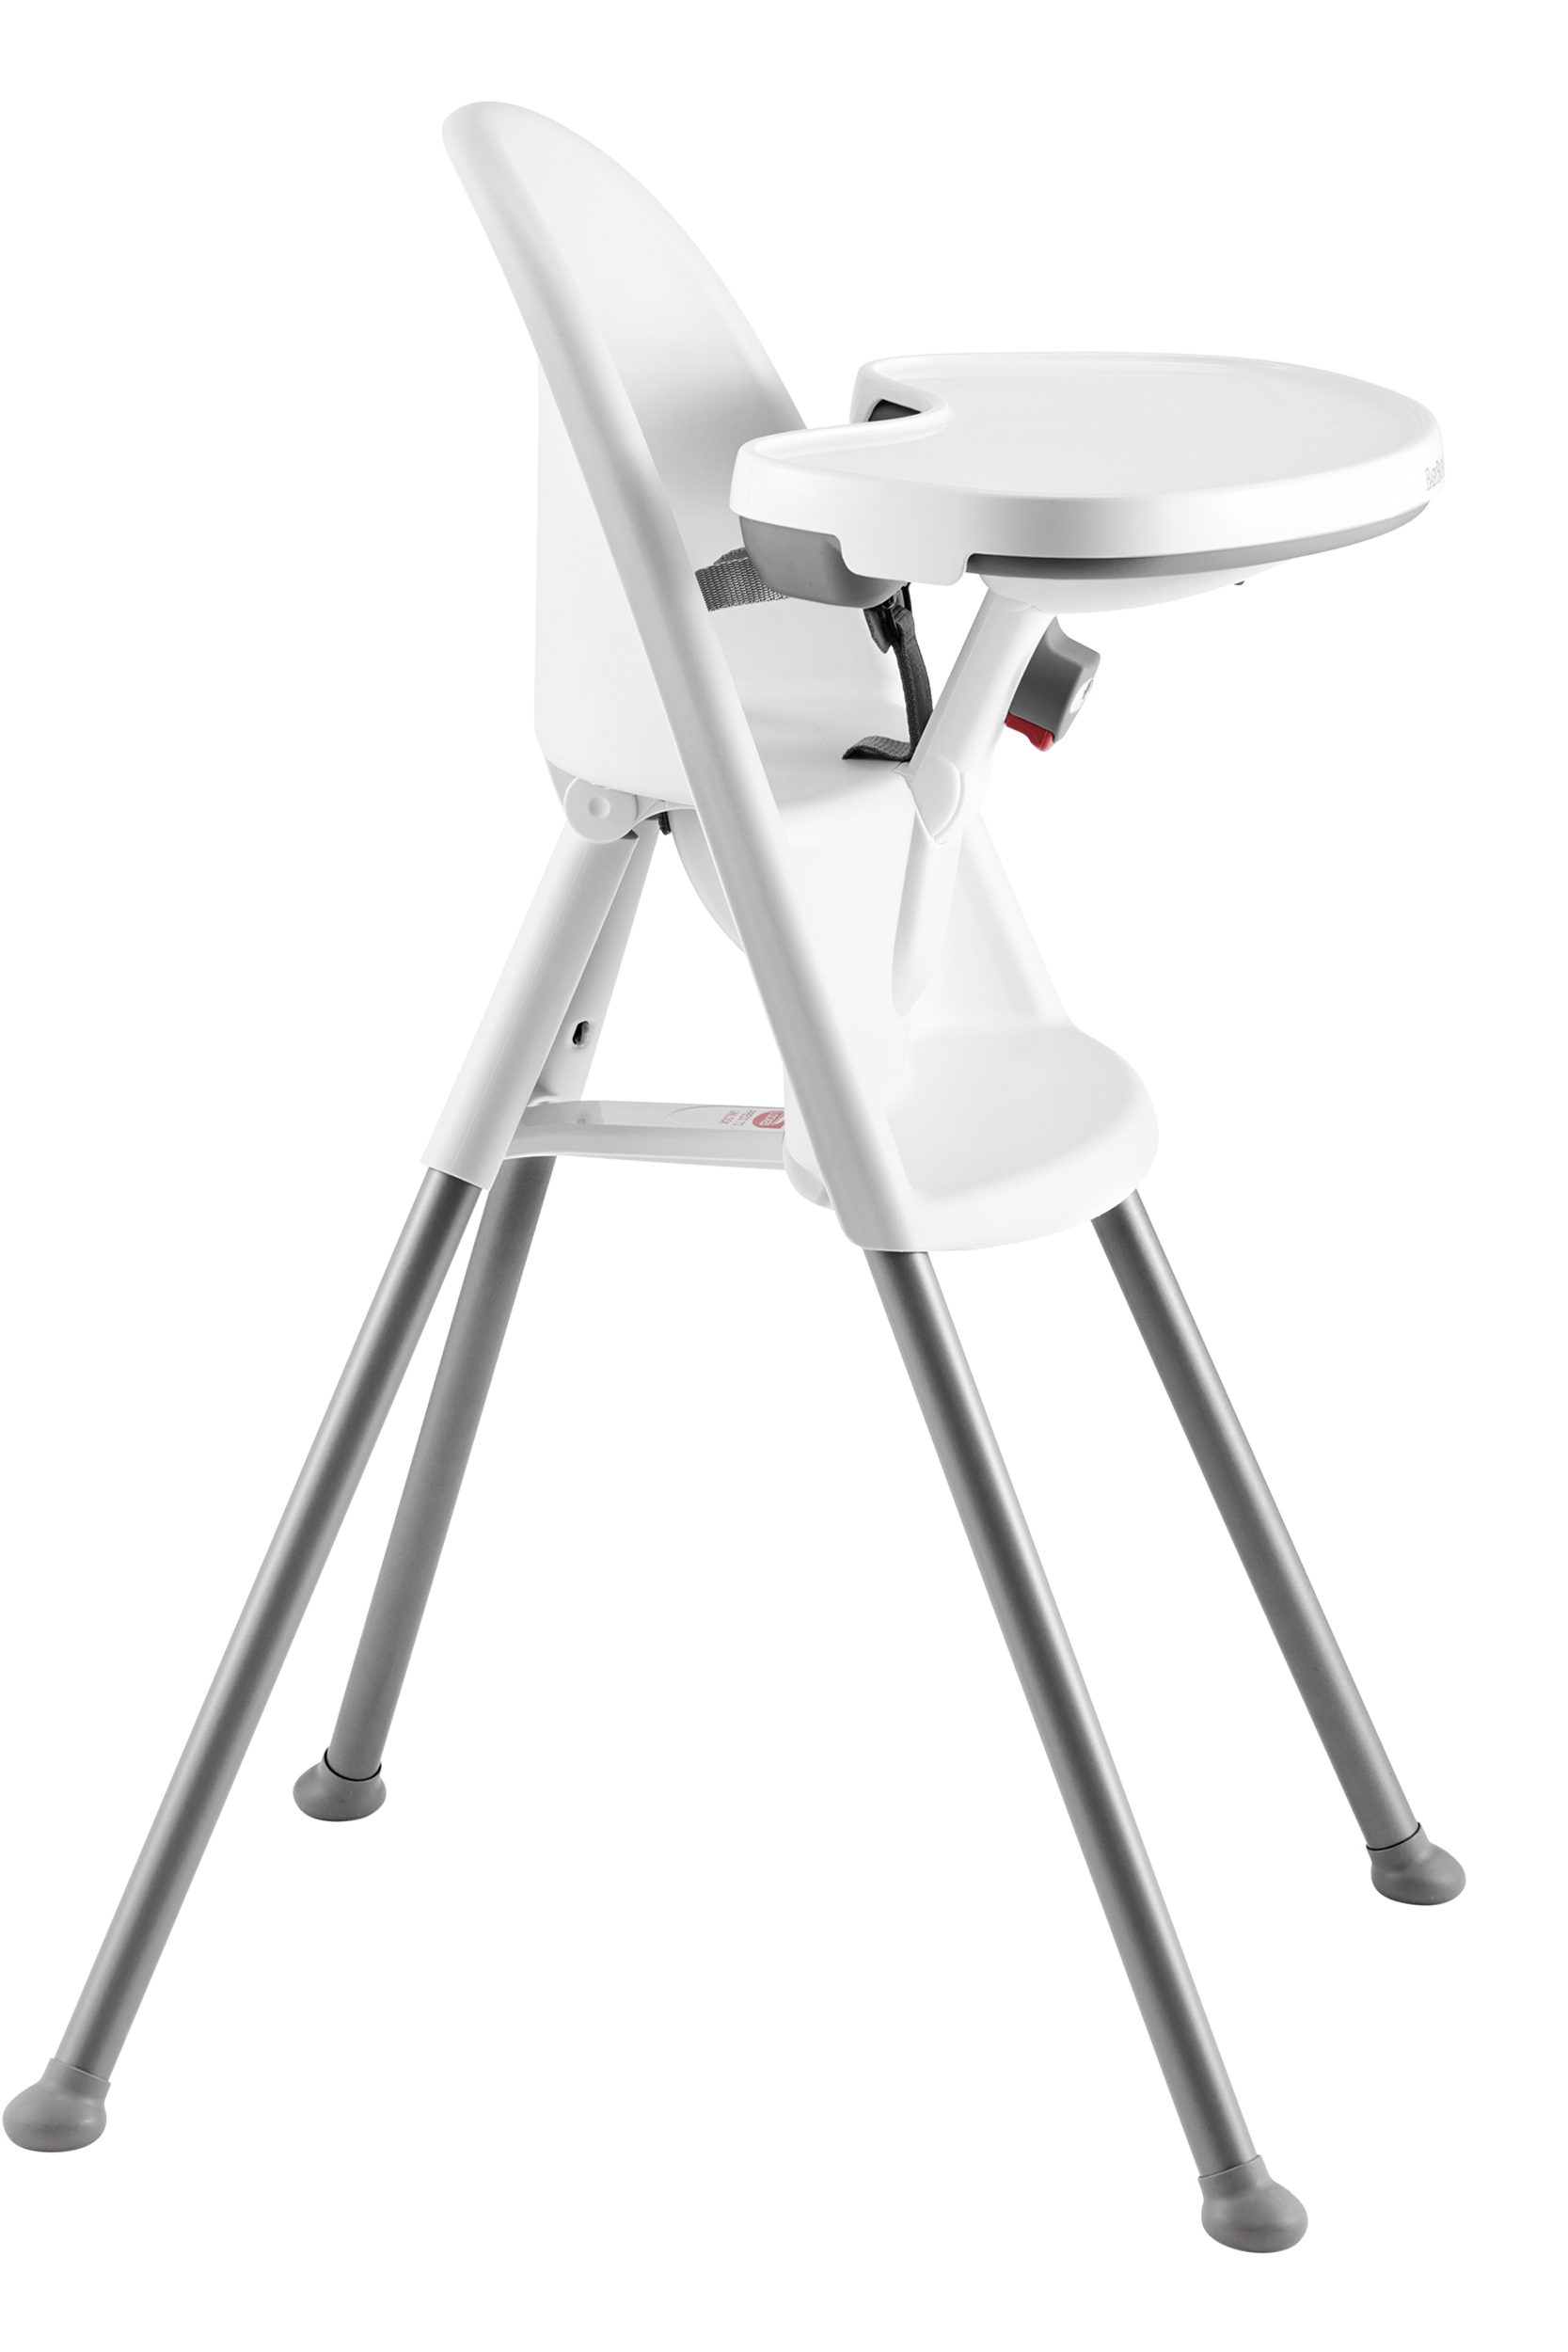 Extra tray for HIgh Chair - BABYBJÖRN